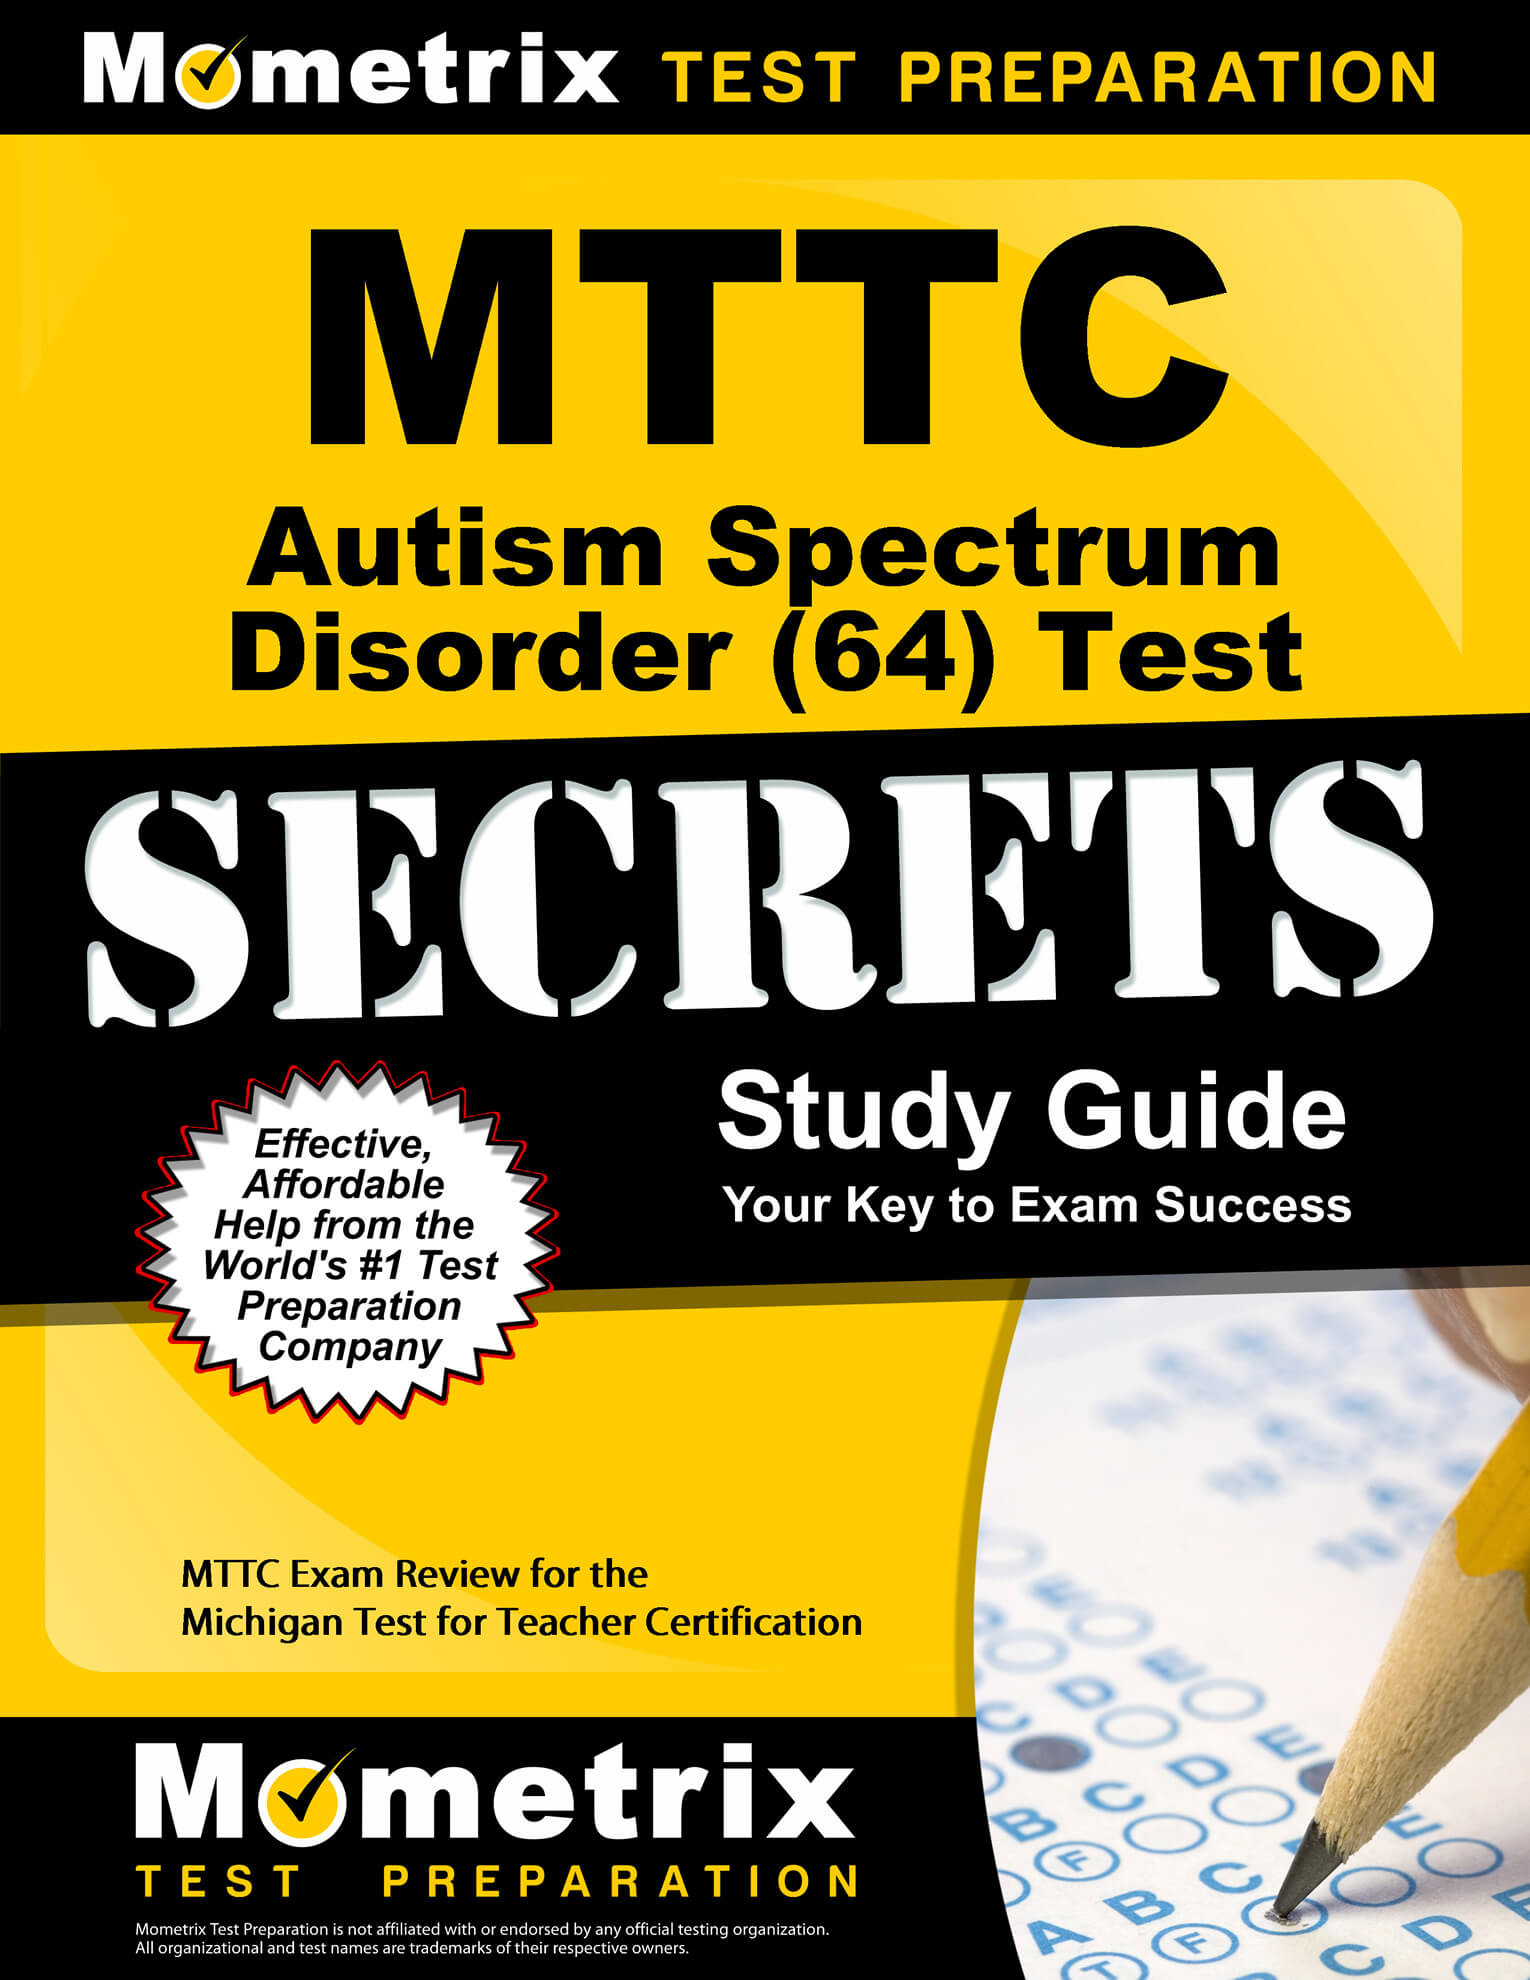 MTTC Autism Spectrum Disorder Study Guide